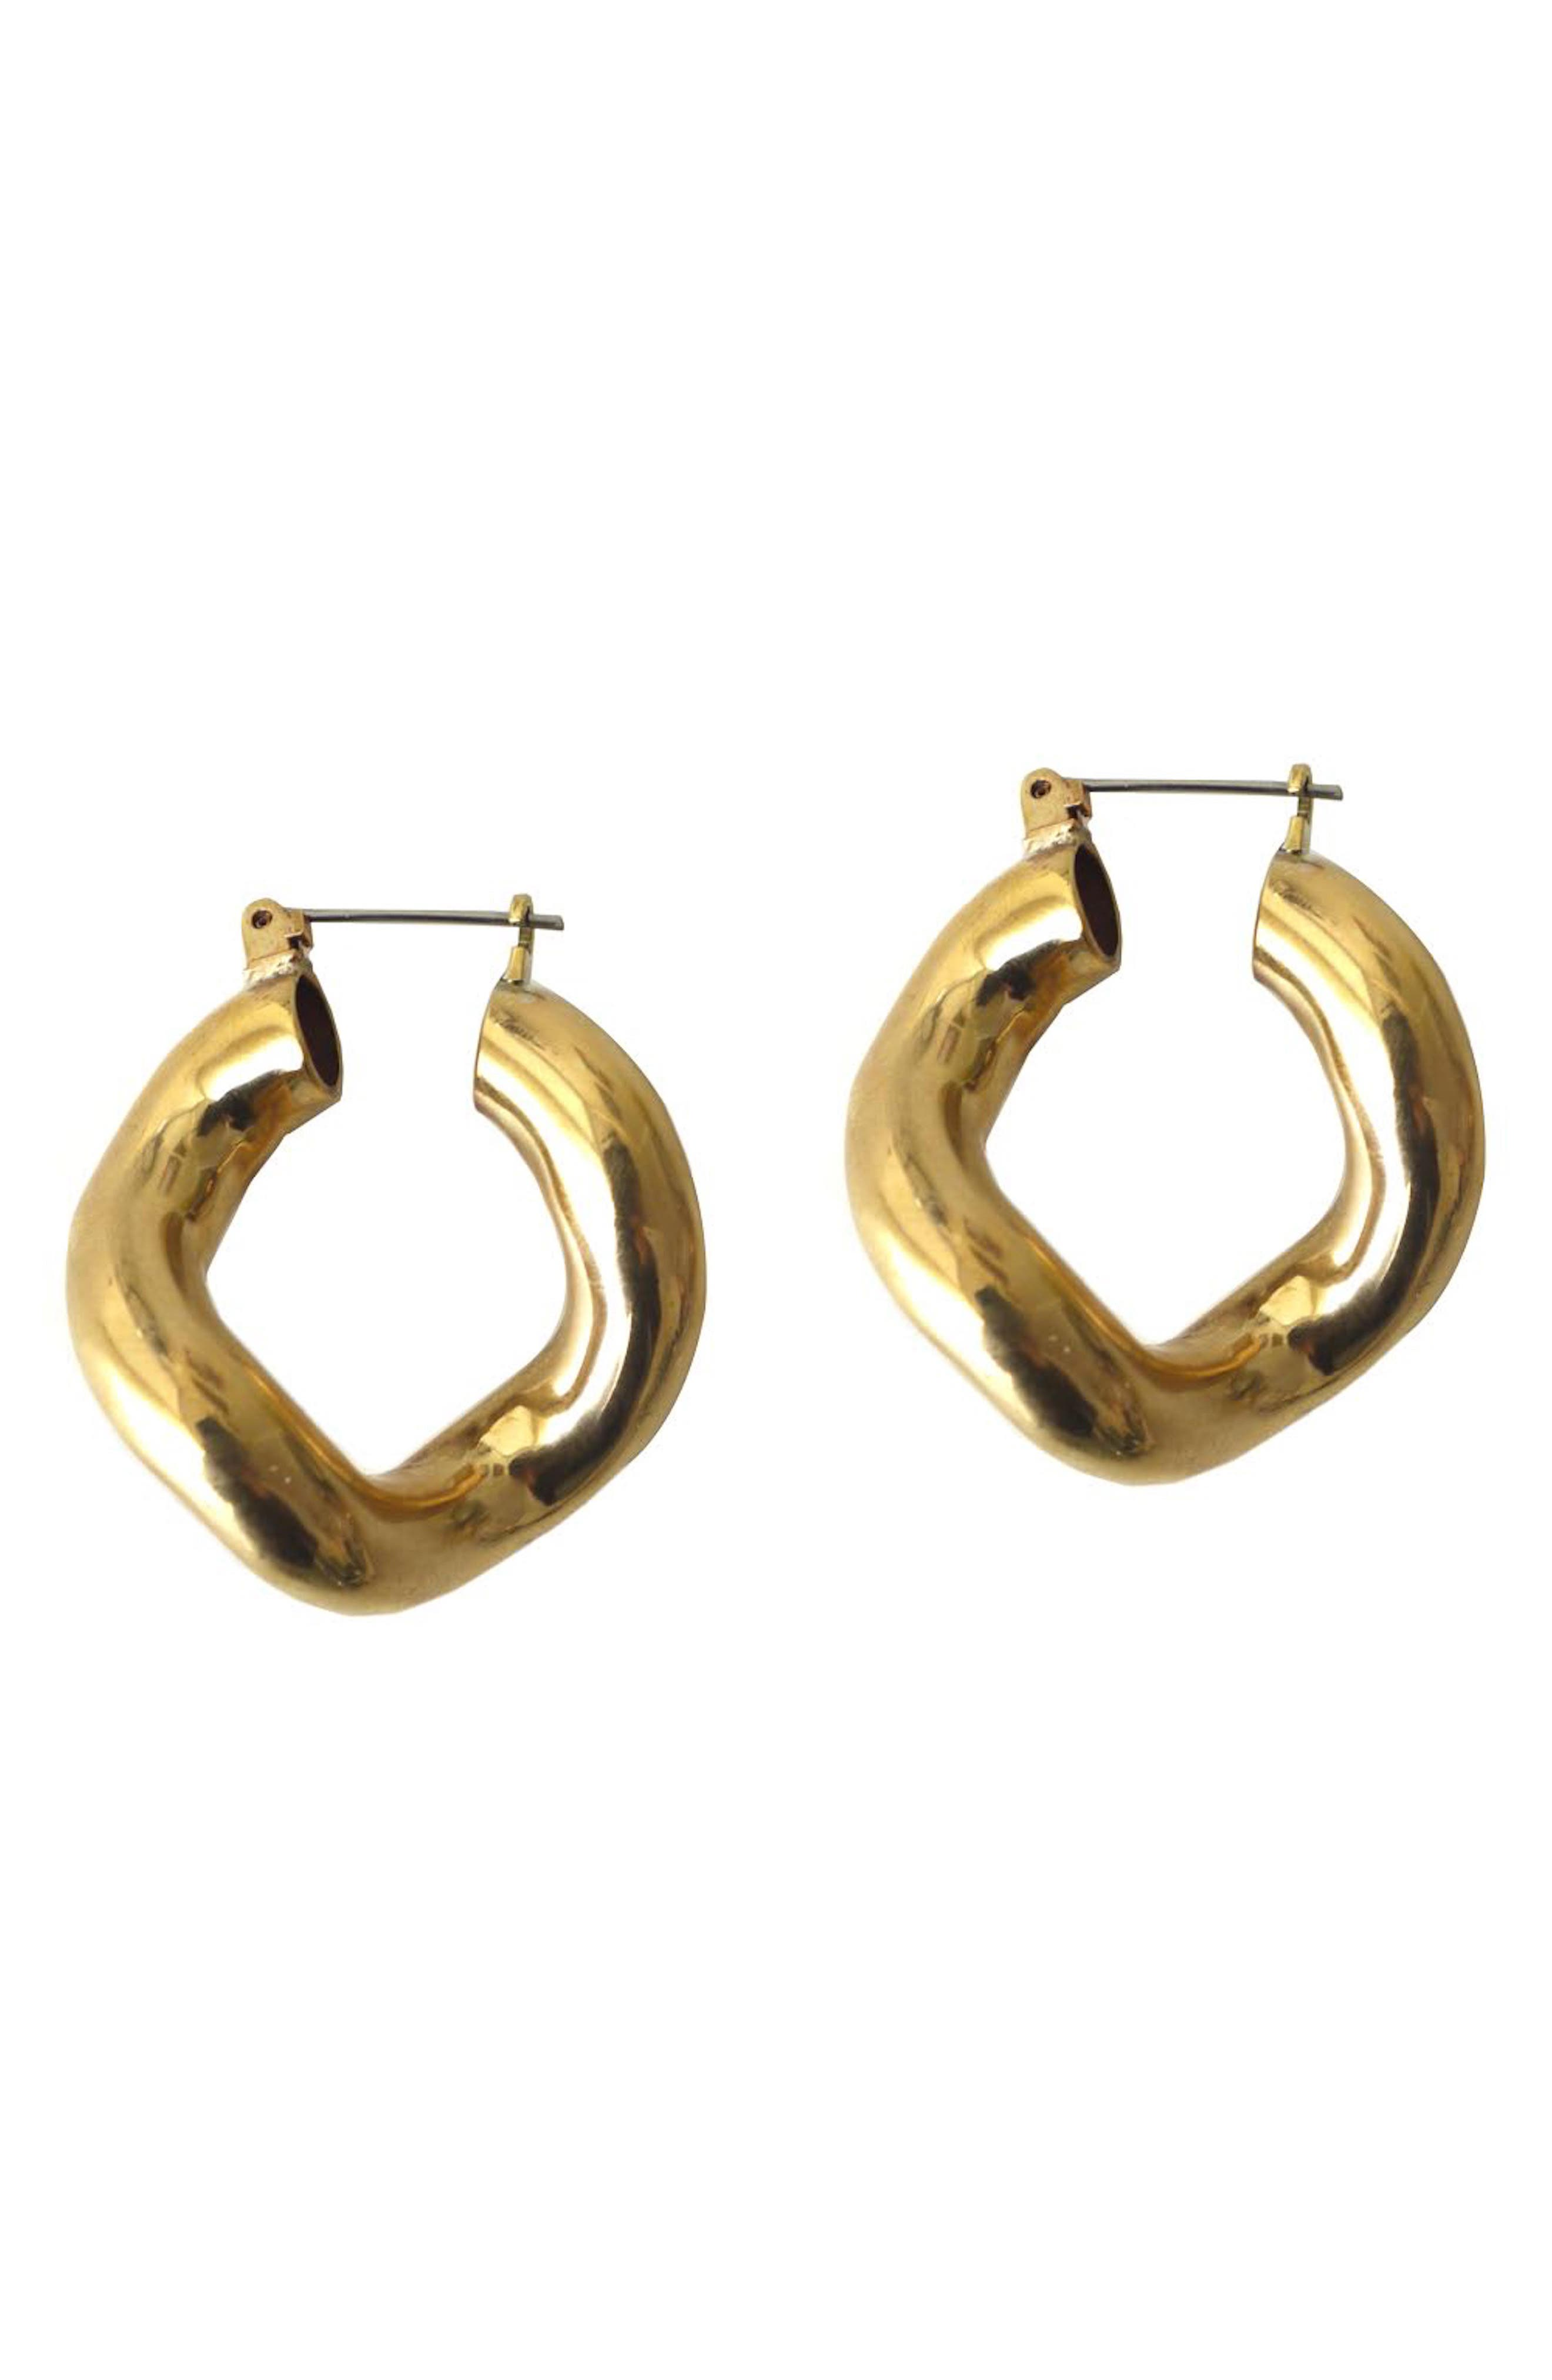 Anima Earrings,                             Main thumbnail 1, color,                             BRASS